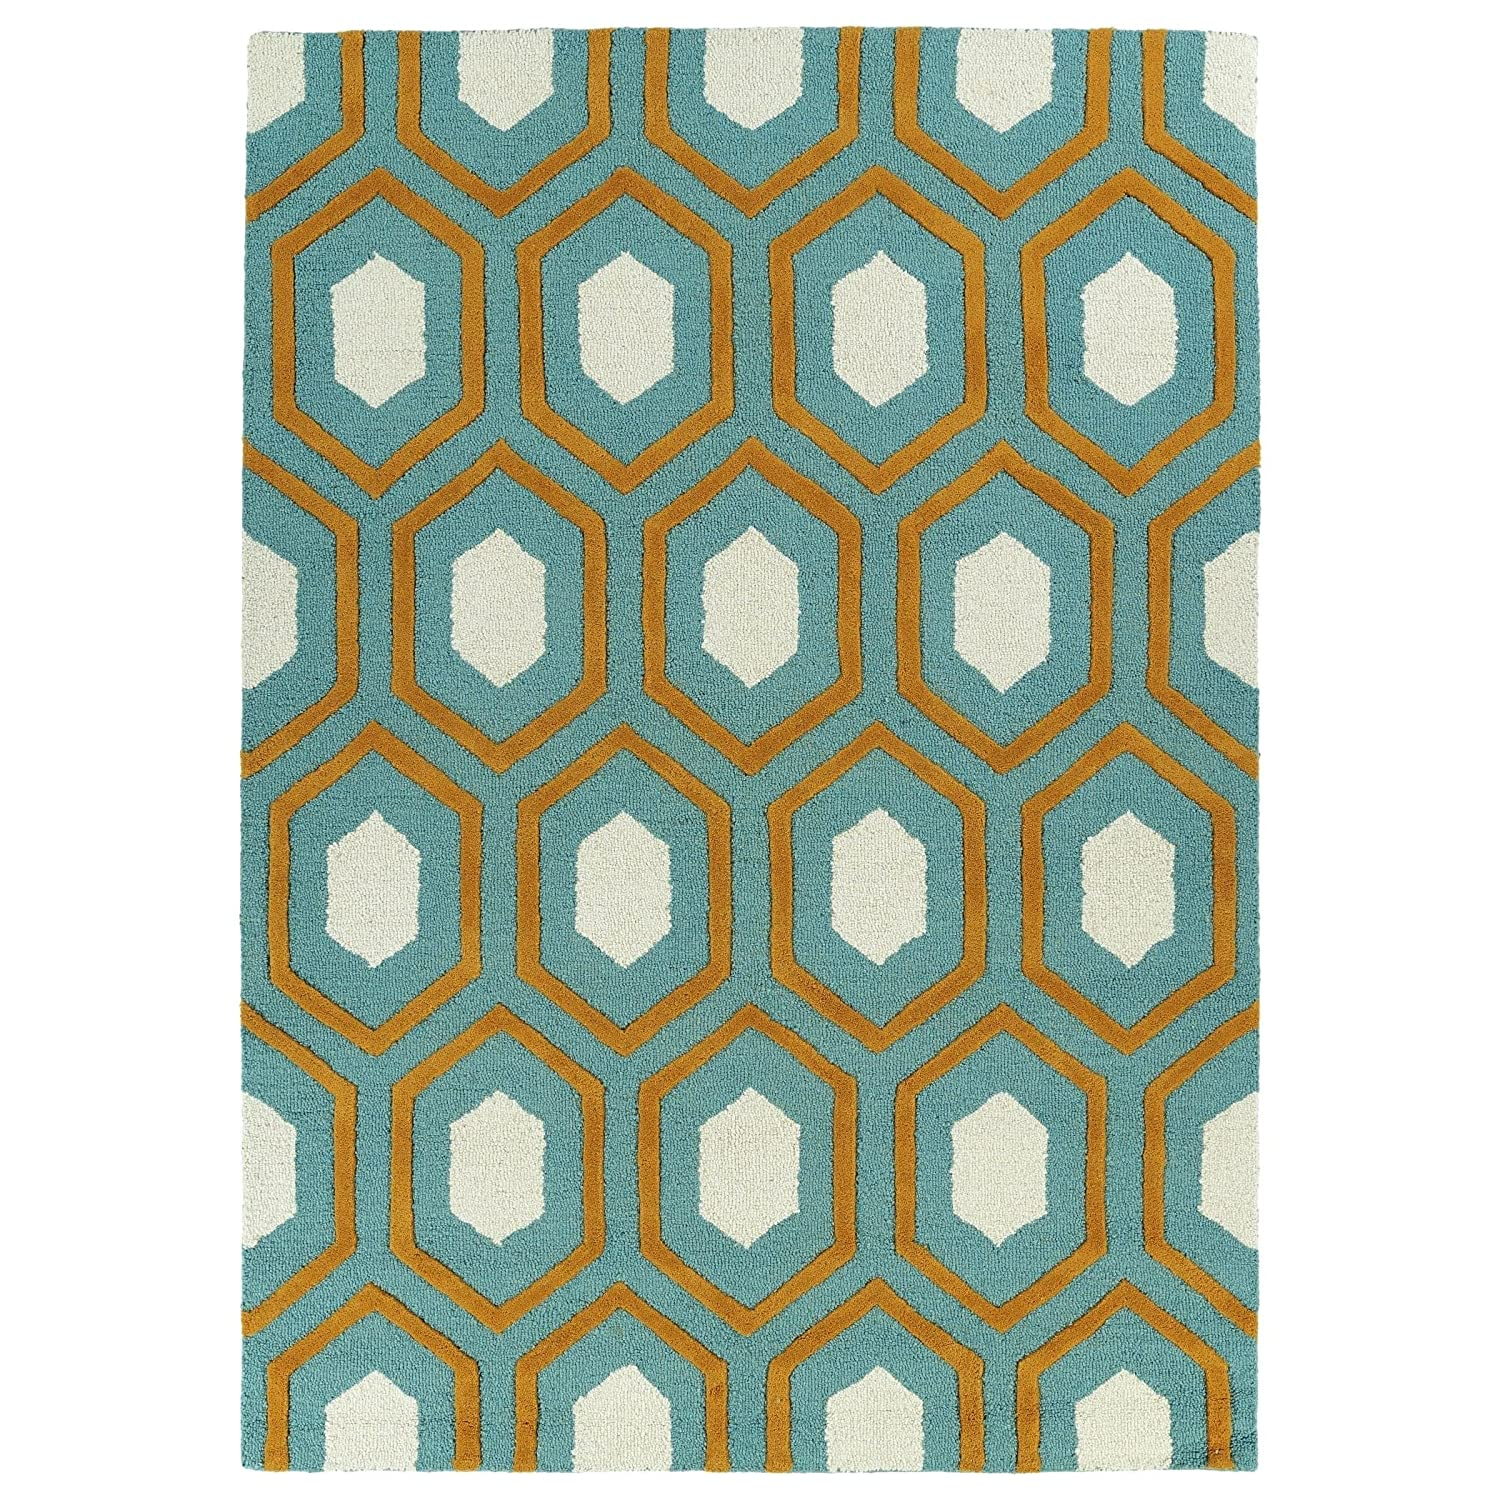 Kaleen Rugs Spaces Collection SPA03-91 Teal Hand Tufted Rug, 5